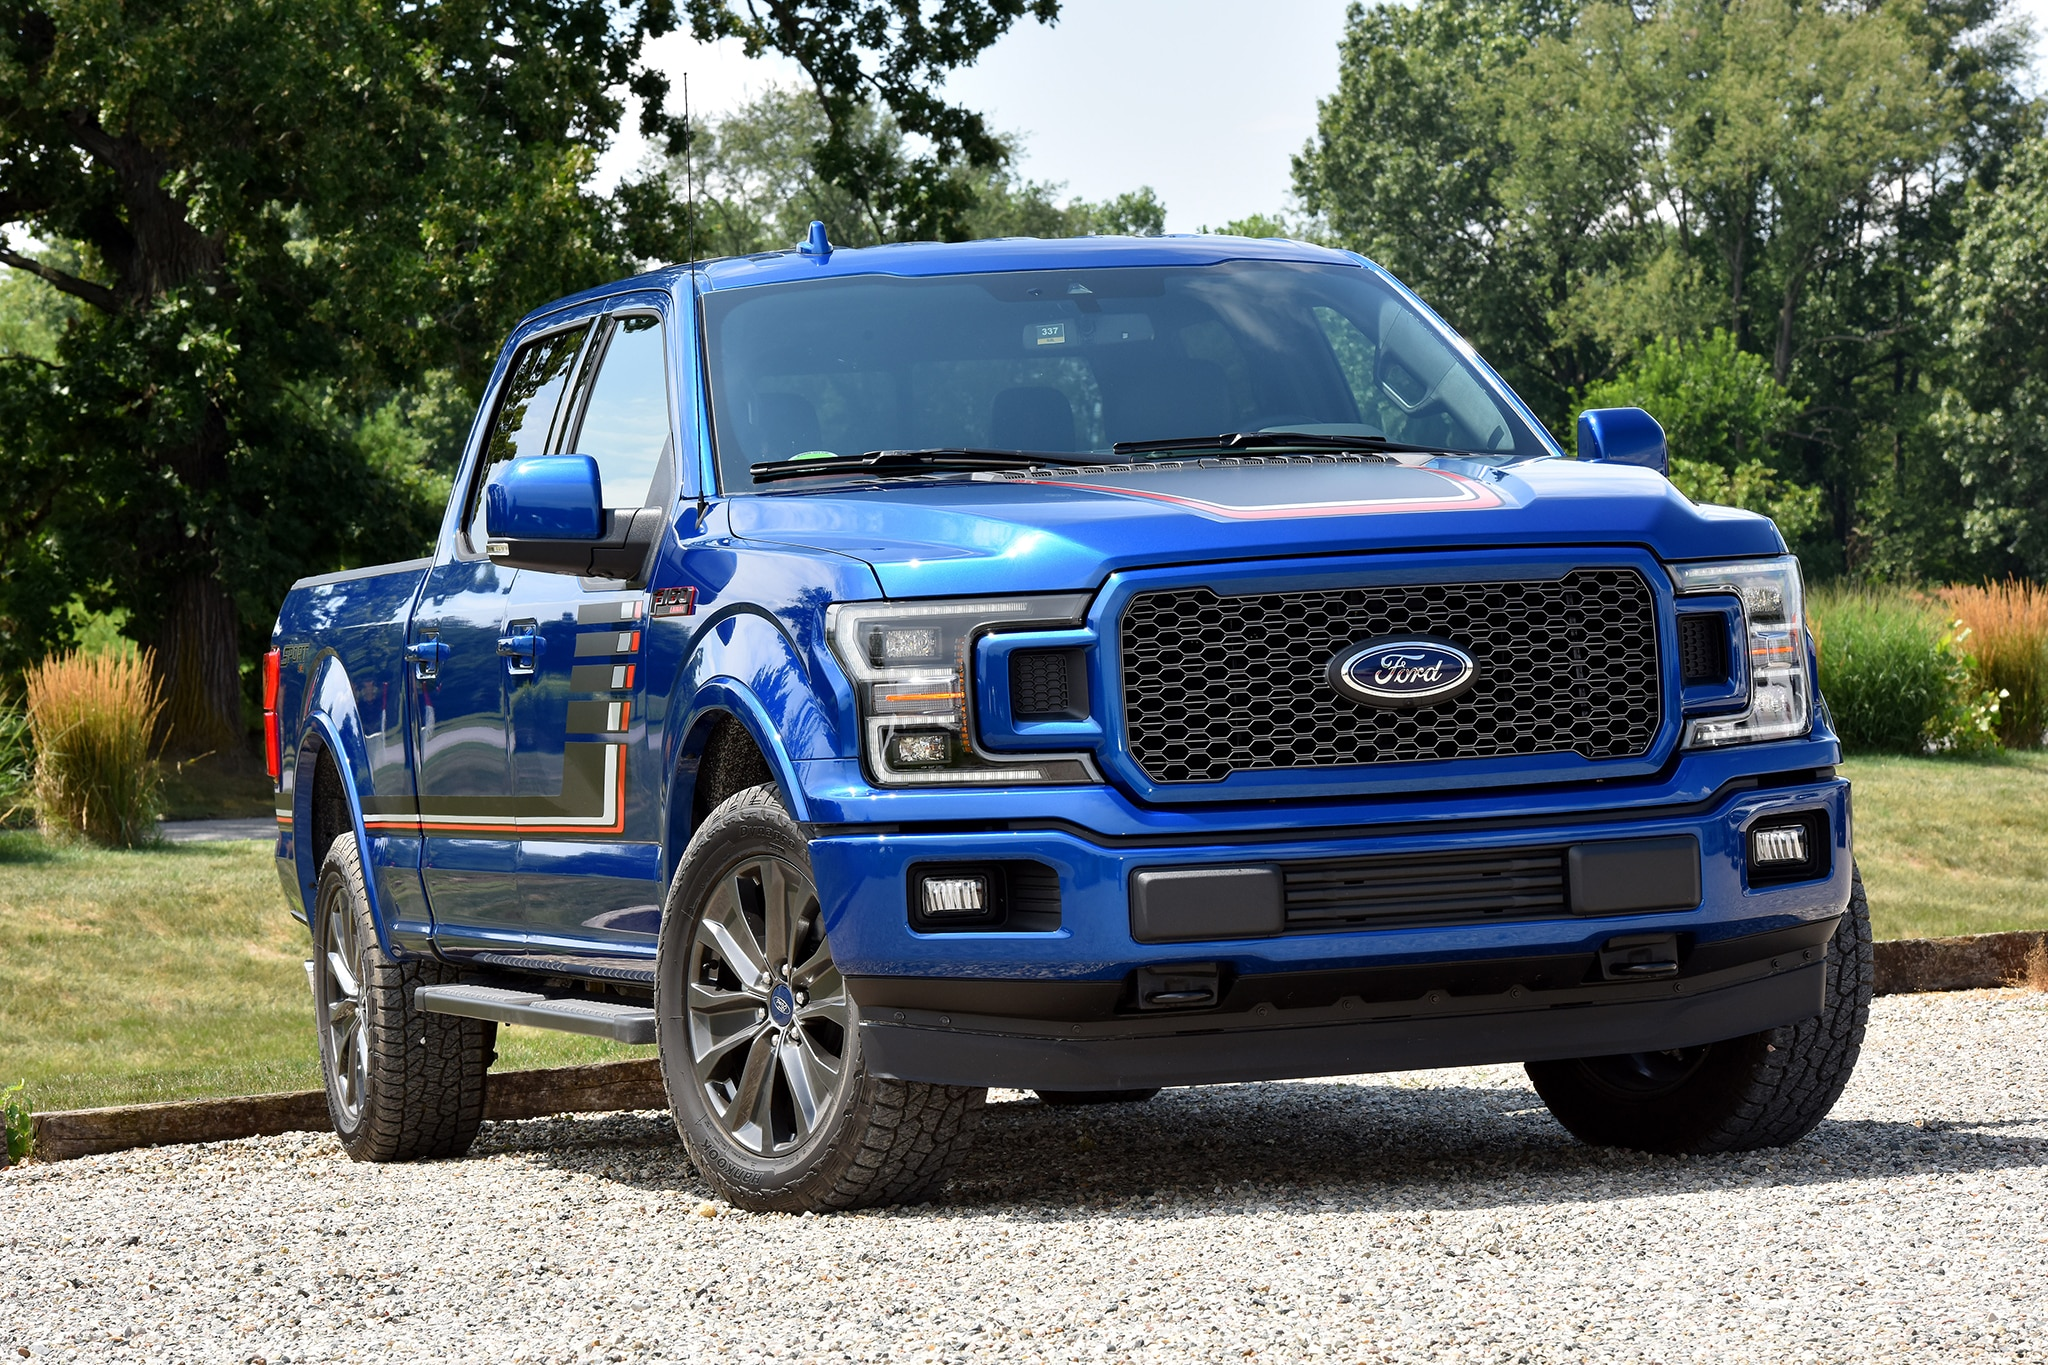 First Drive: 2018 Ford F-150 | Automobile Magazine